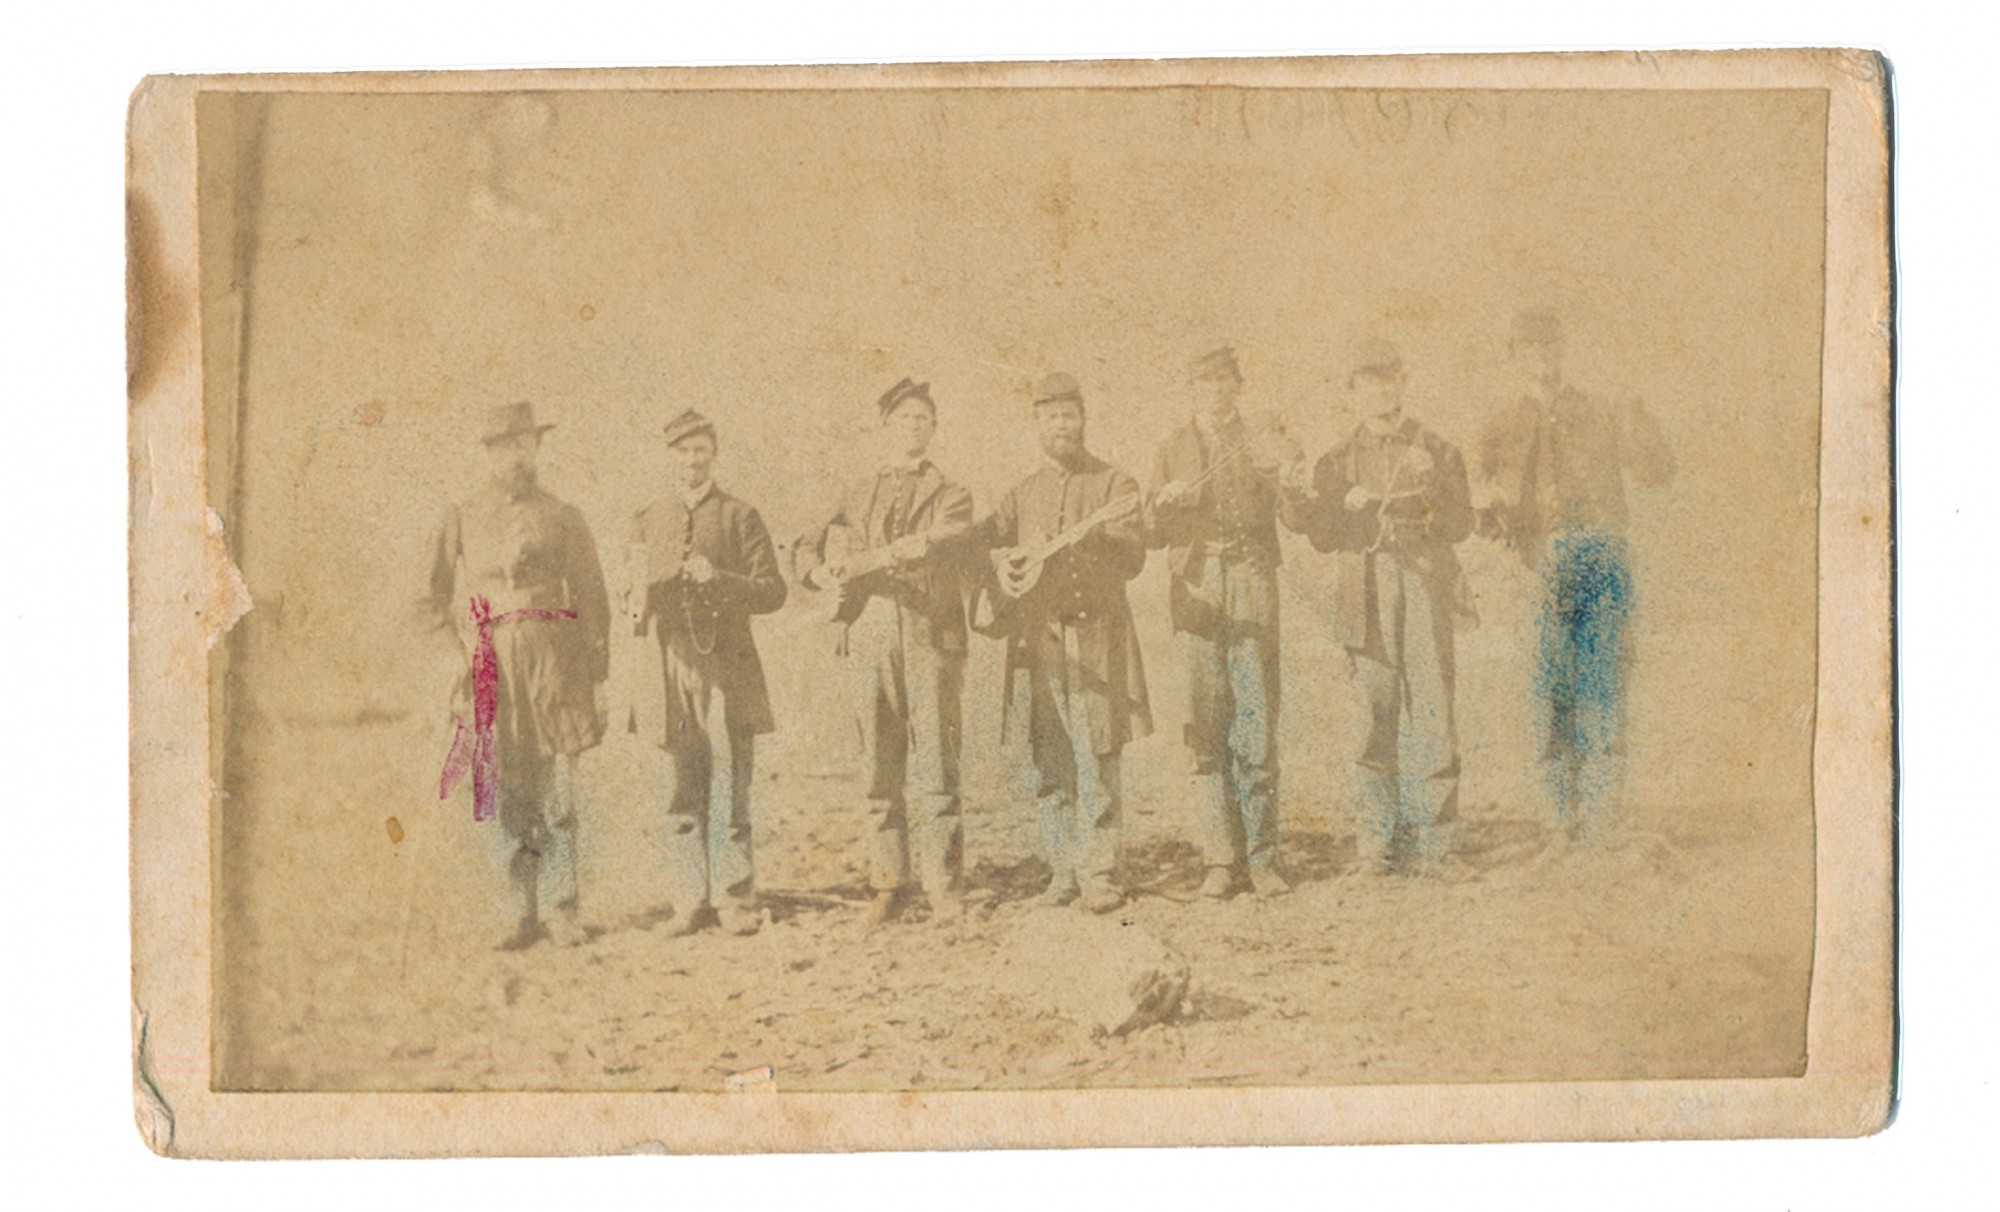 OUTDOOR CDV OF SEVEN 99TH OHIO MINSTRELS